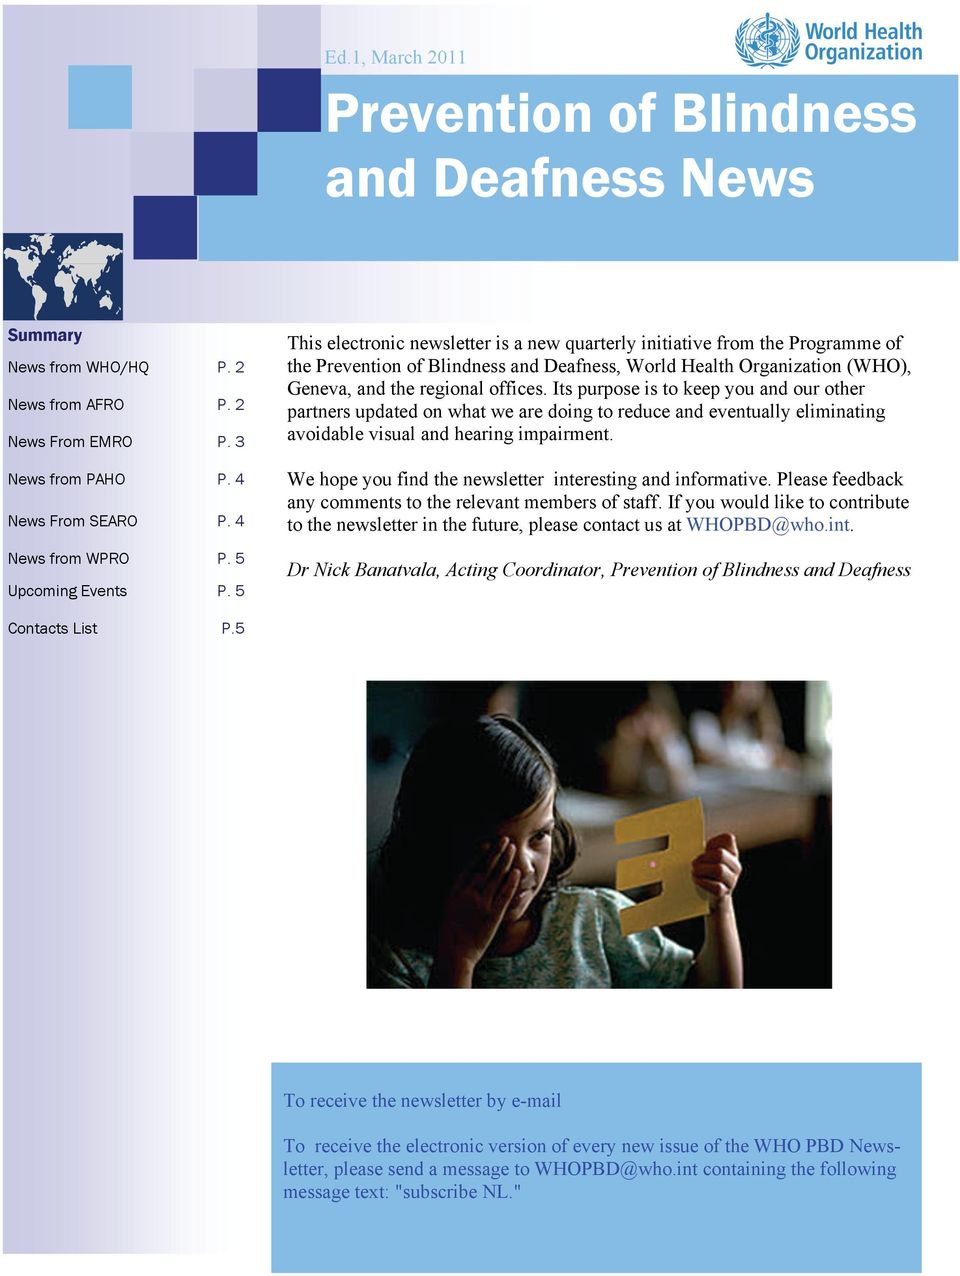 5 This electronic newsletter is a new quarterly initiative from the Programme of the Prevention of Blindness and Deafness, World Health Organization (WHO), Geneva, and the regional offices.